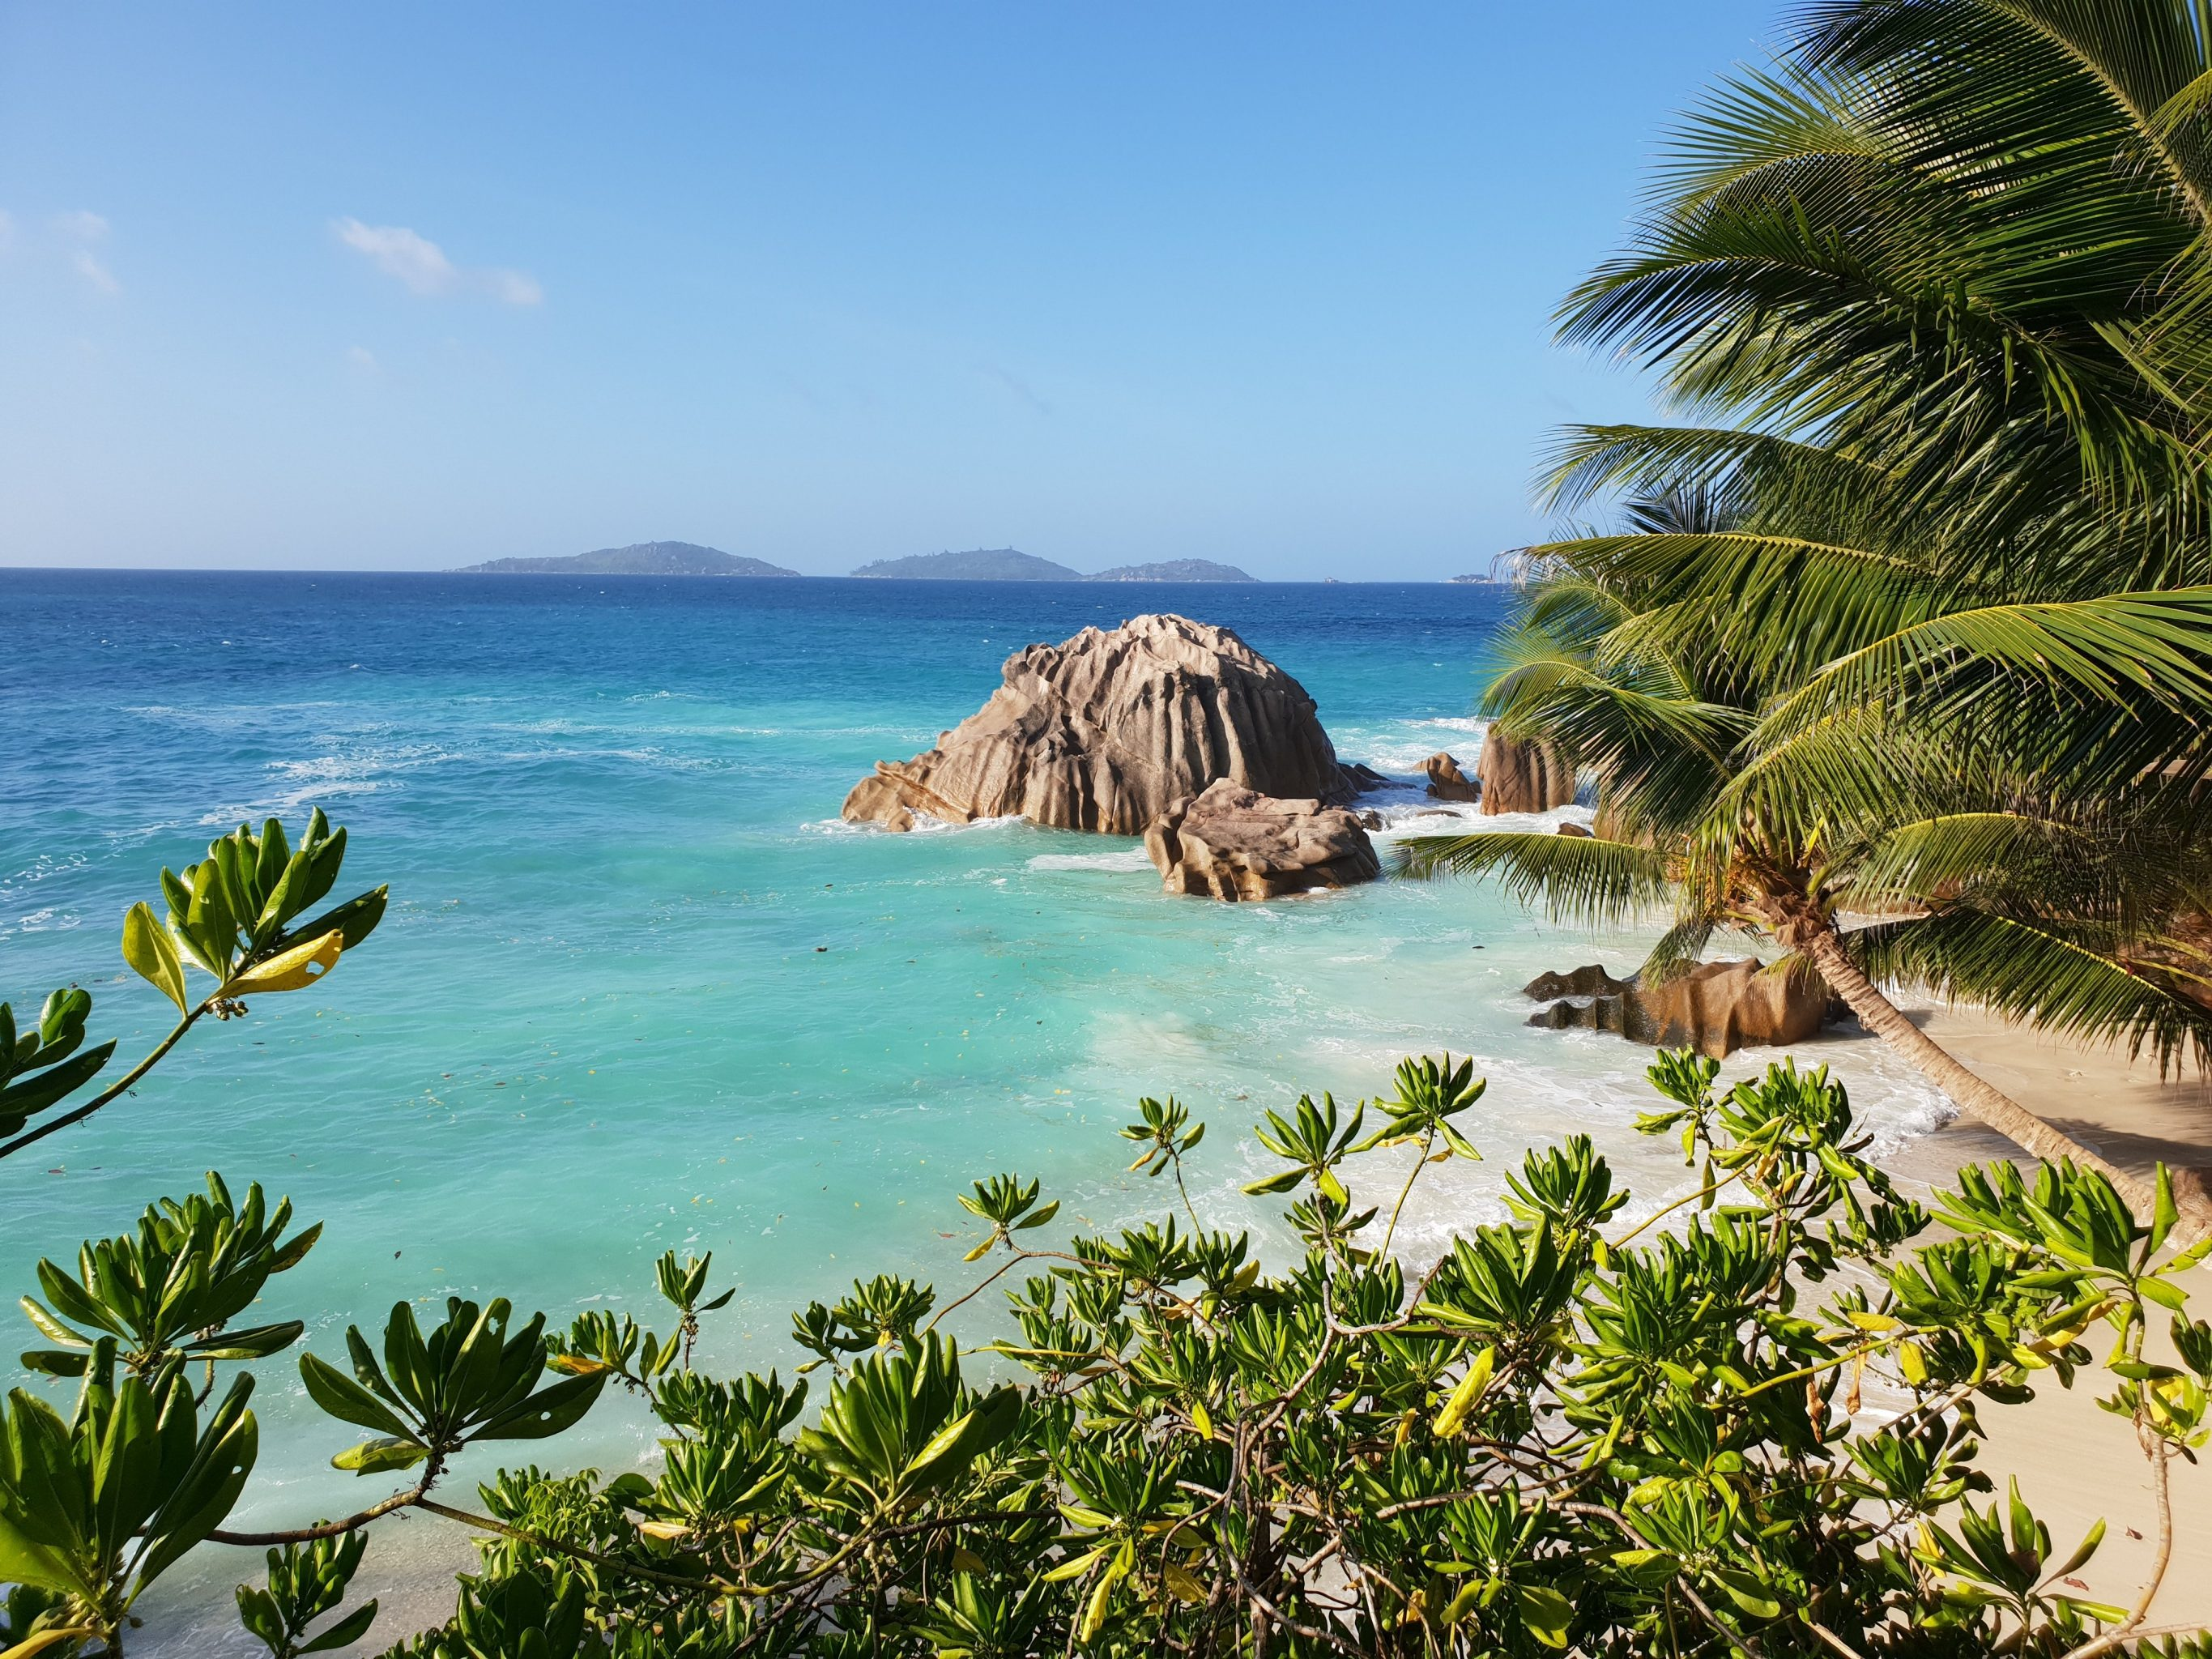 Solo travel Seychelles? Are solo travelers even allowed in this honeymoon paradise? Read all about why and how you should plan a solo trip to Seychelles.